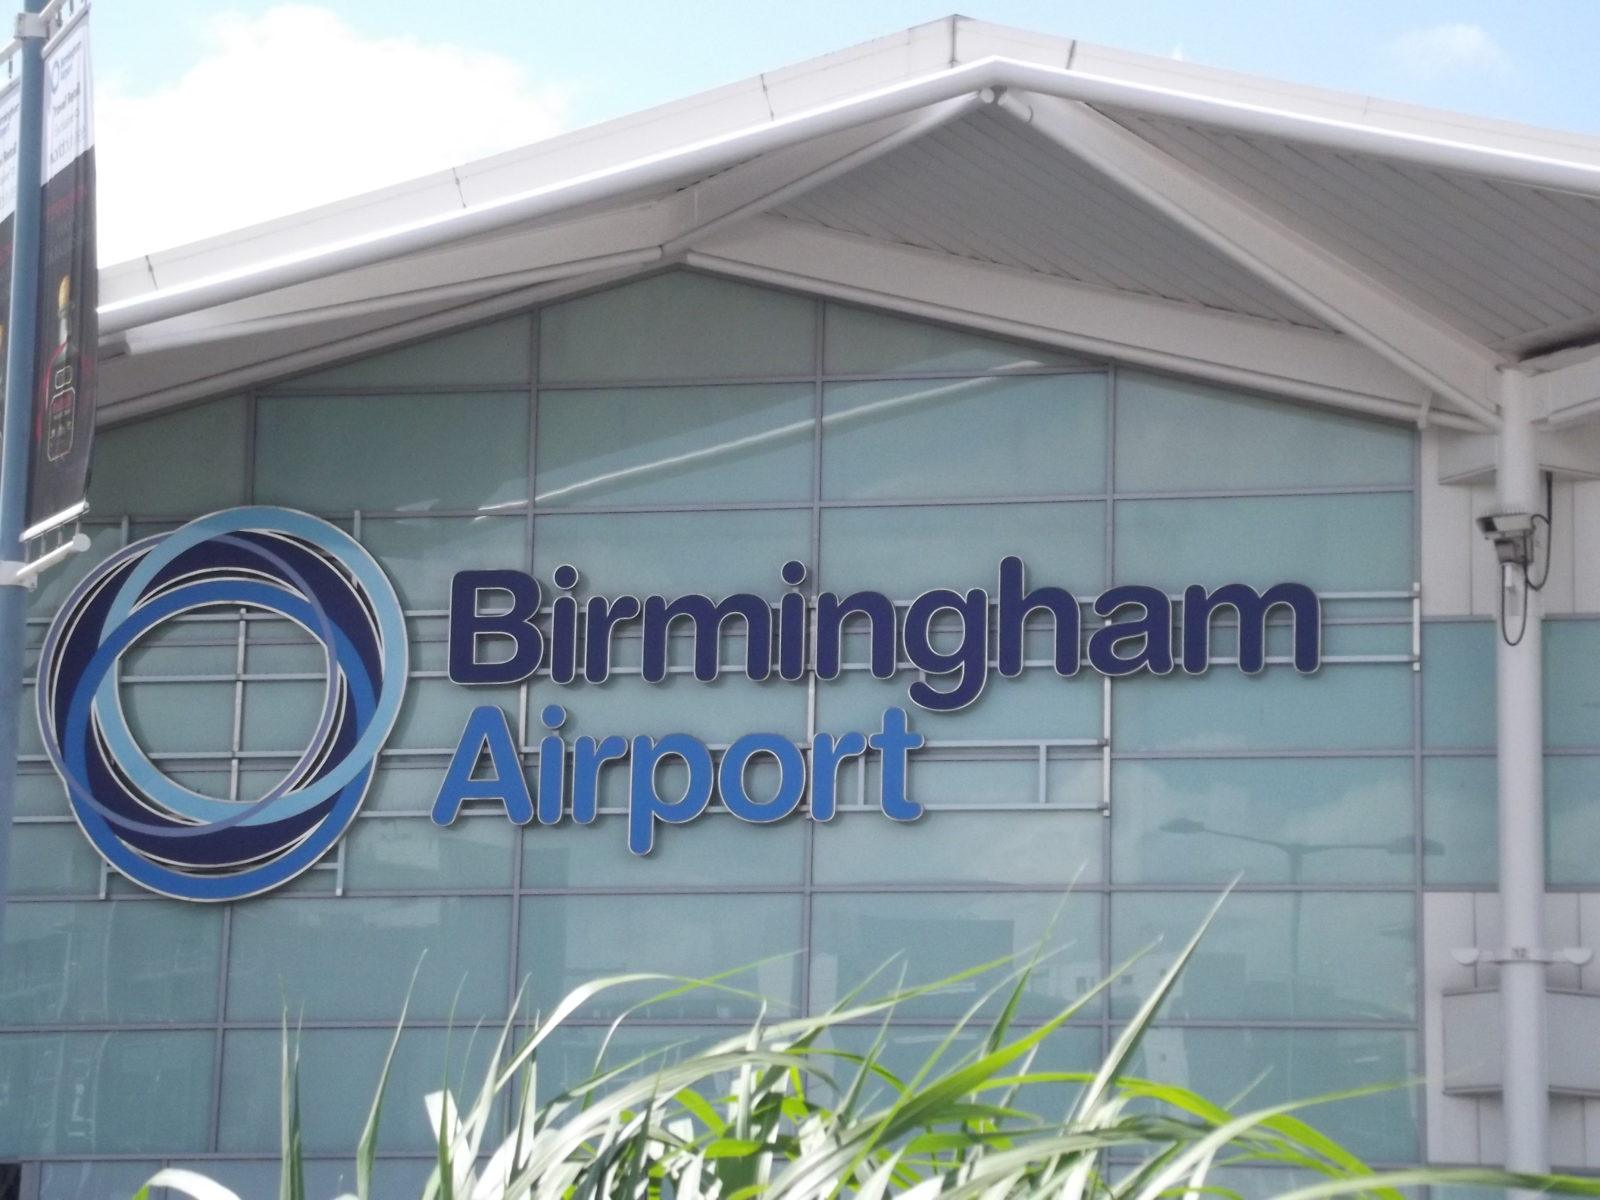 Manchester and Birmingham Airport Delay Compensation1